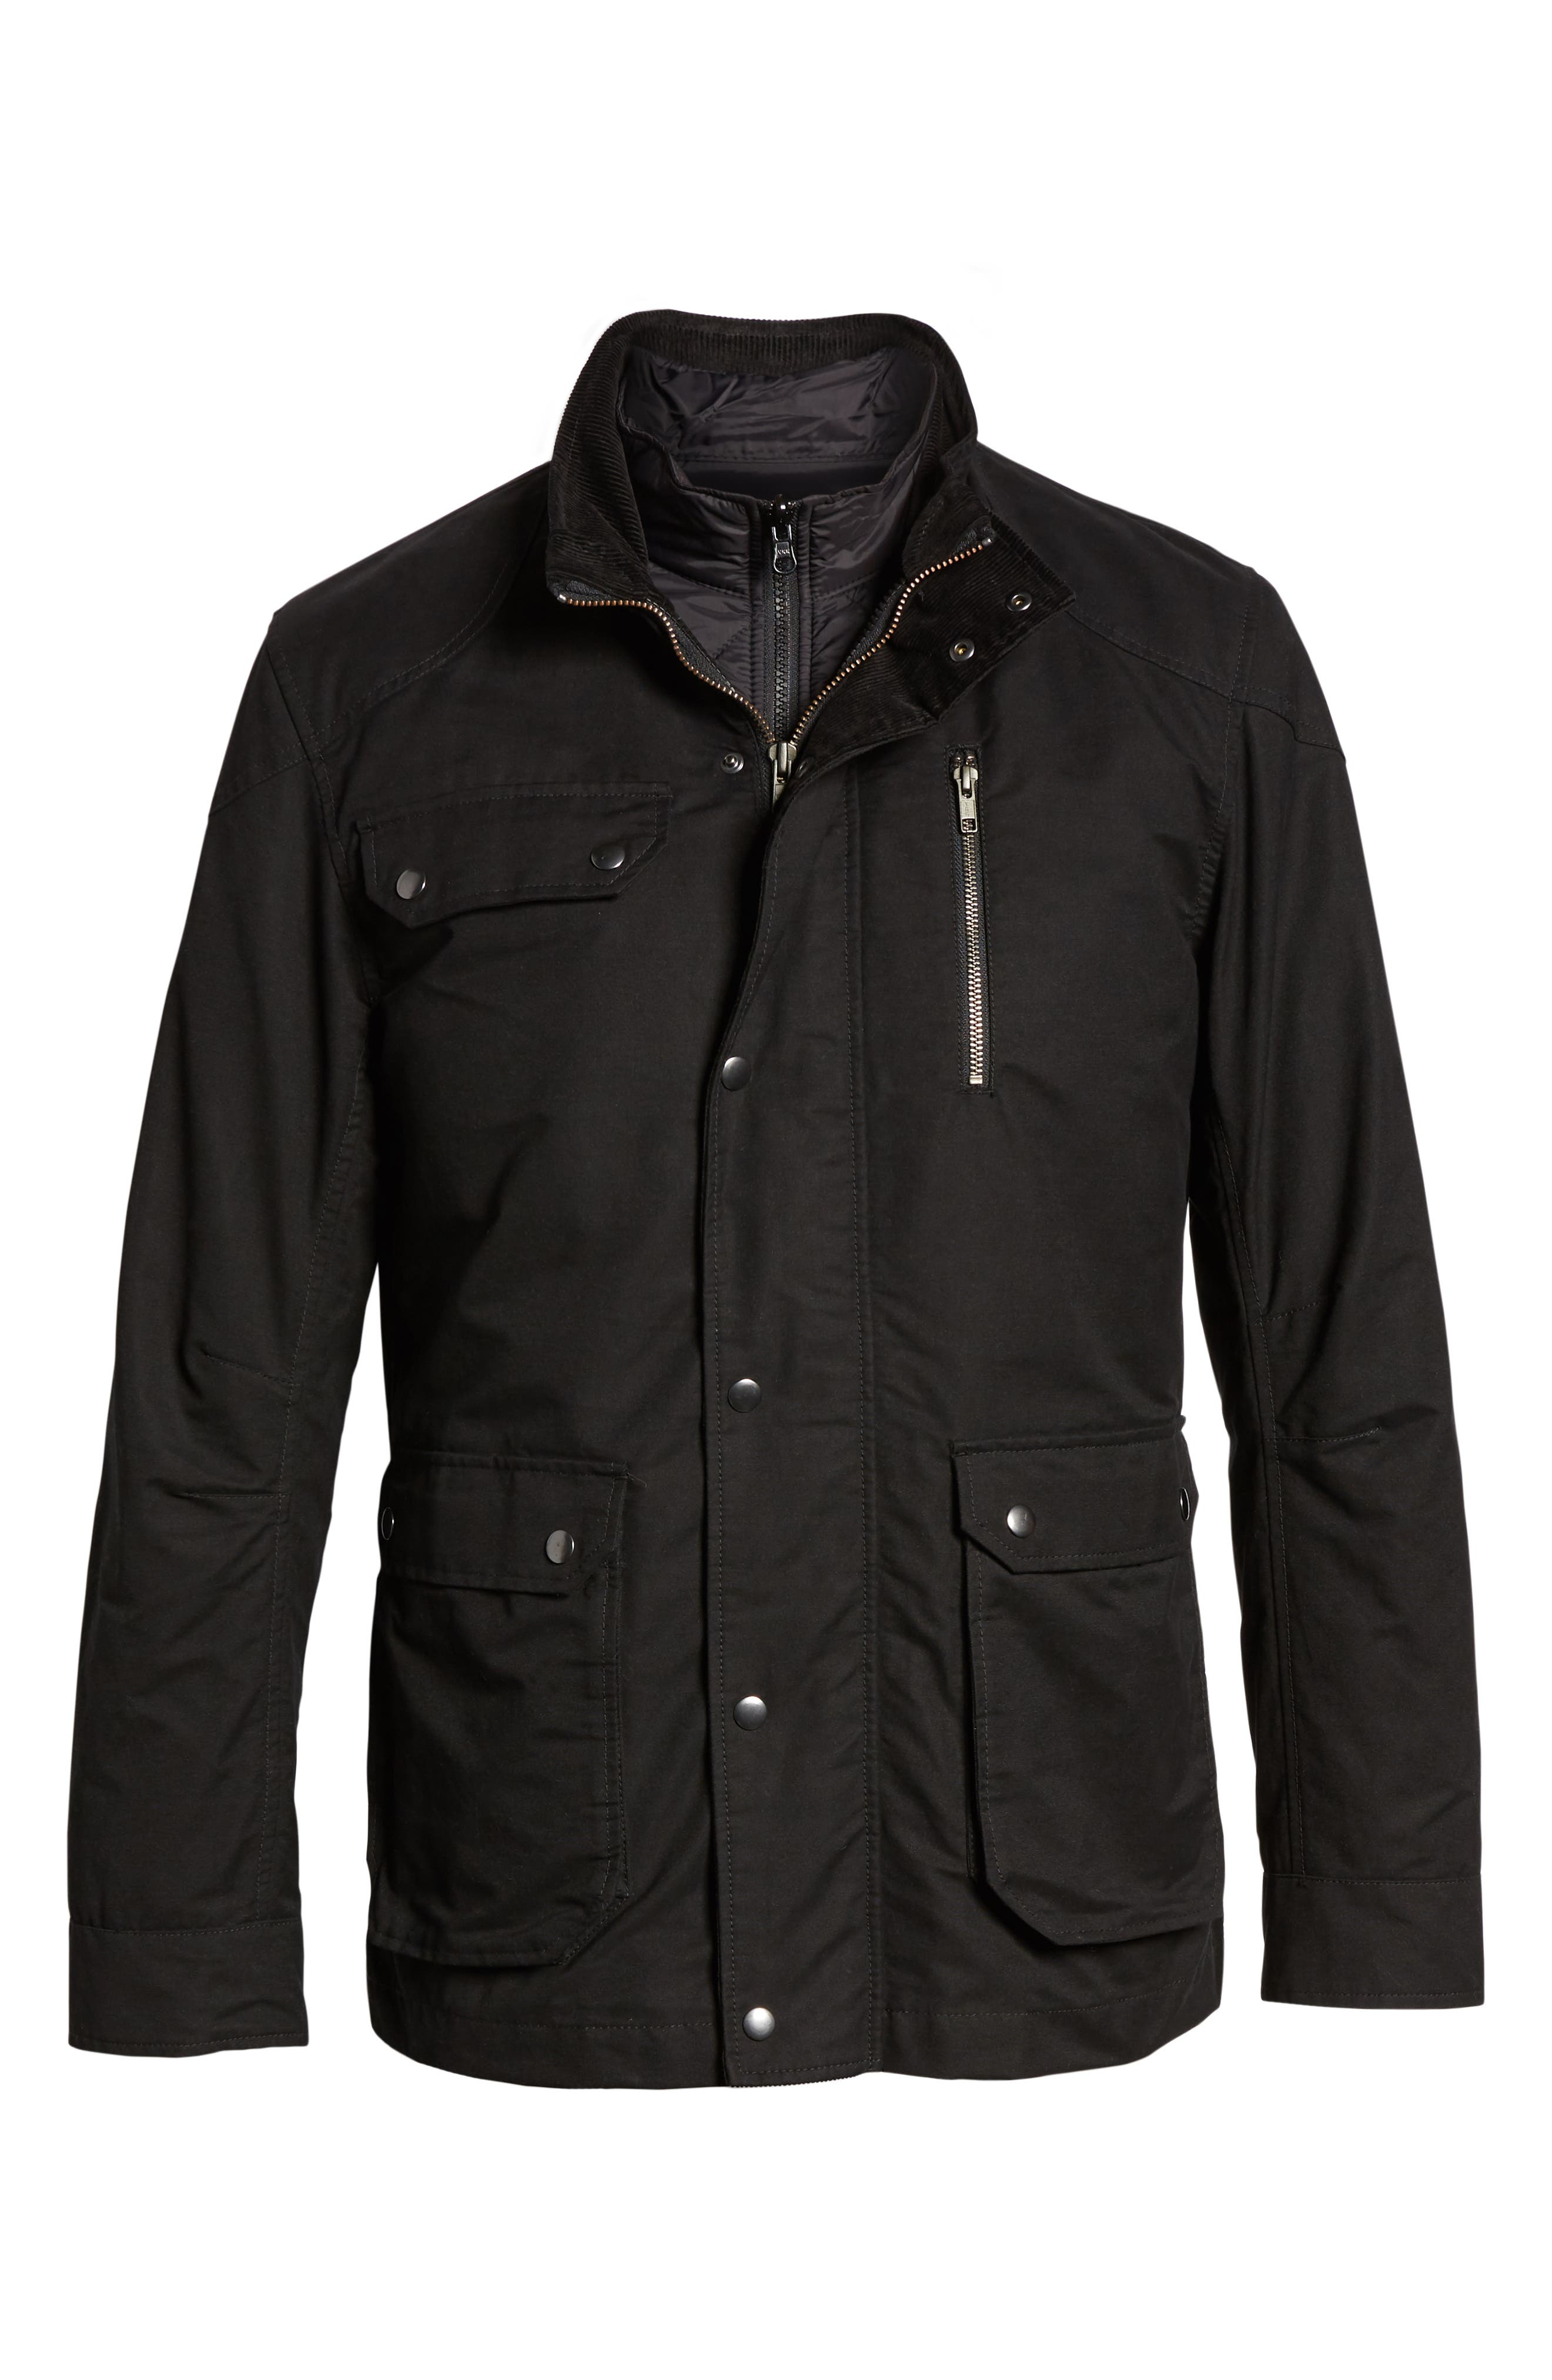 'Harper' Water Resistant 3-in-1 Waxed Canvas Jacket,                             Alternate thumbnail 7, color,                             ONYX